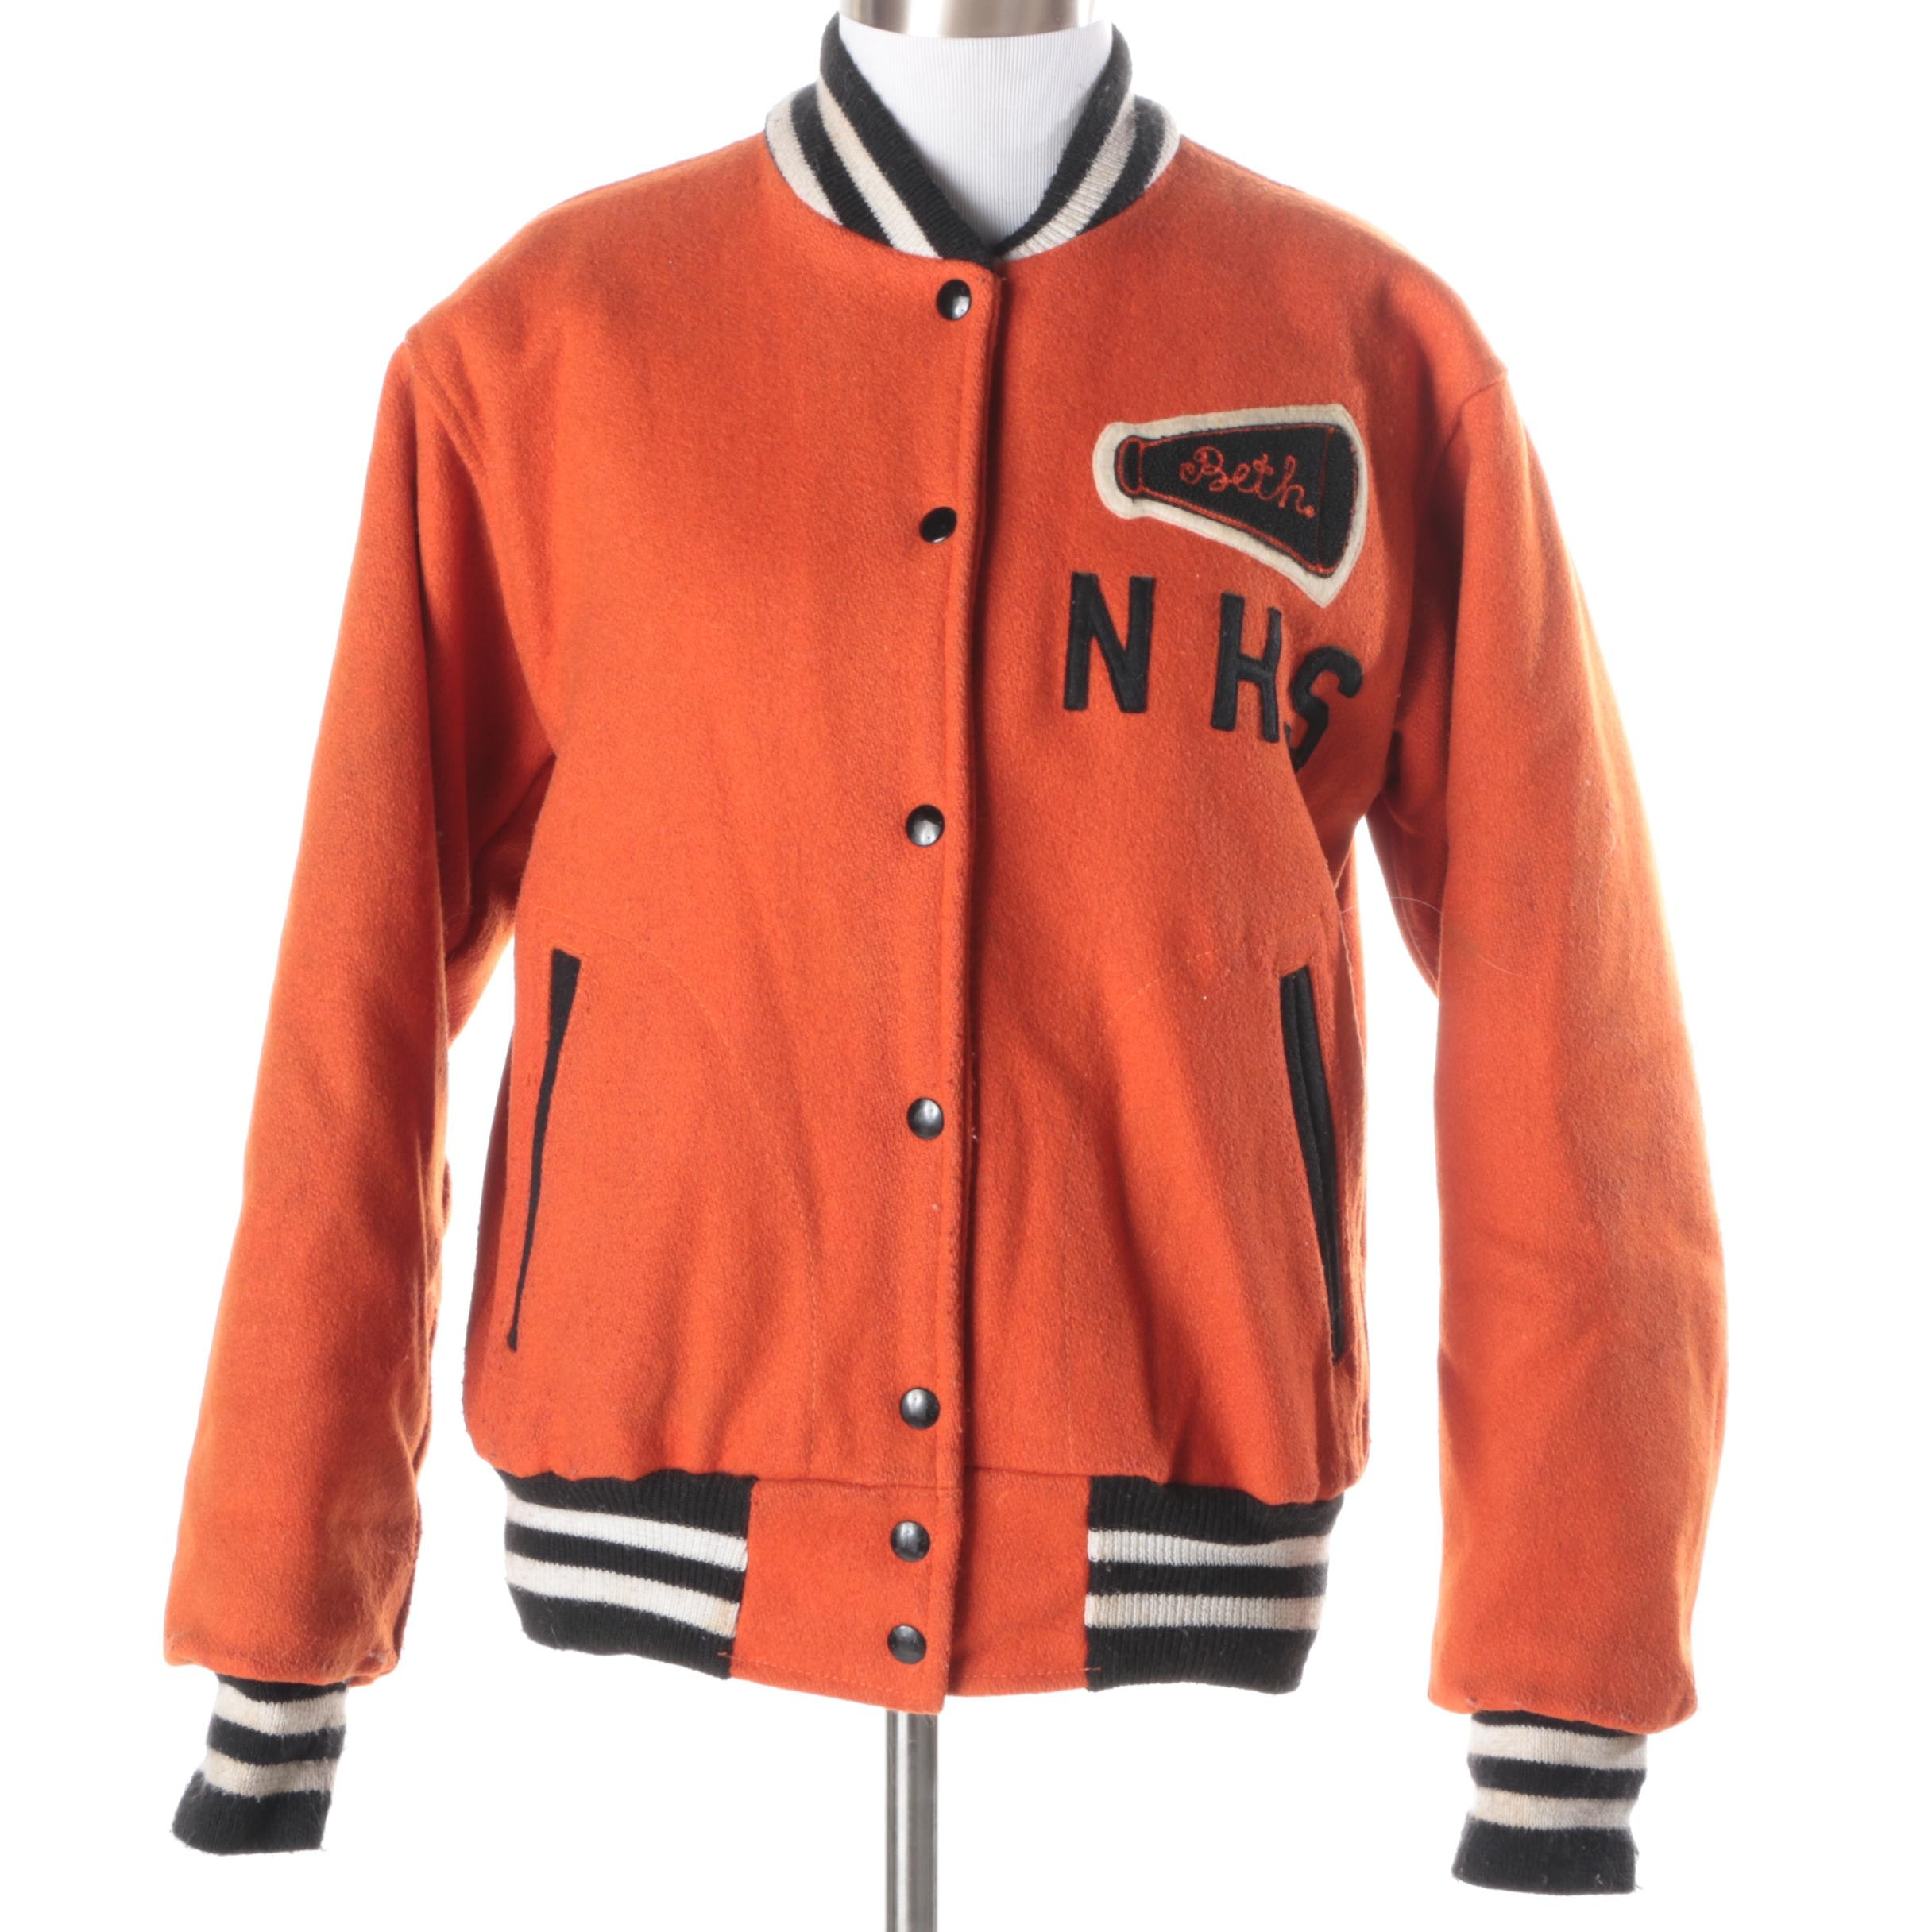 Women's Vintage Wool Letterman Jacket